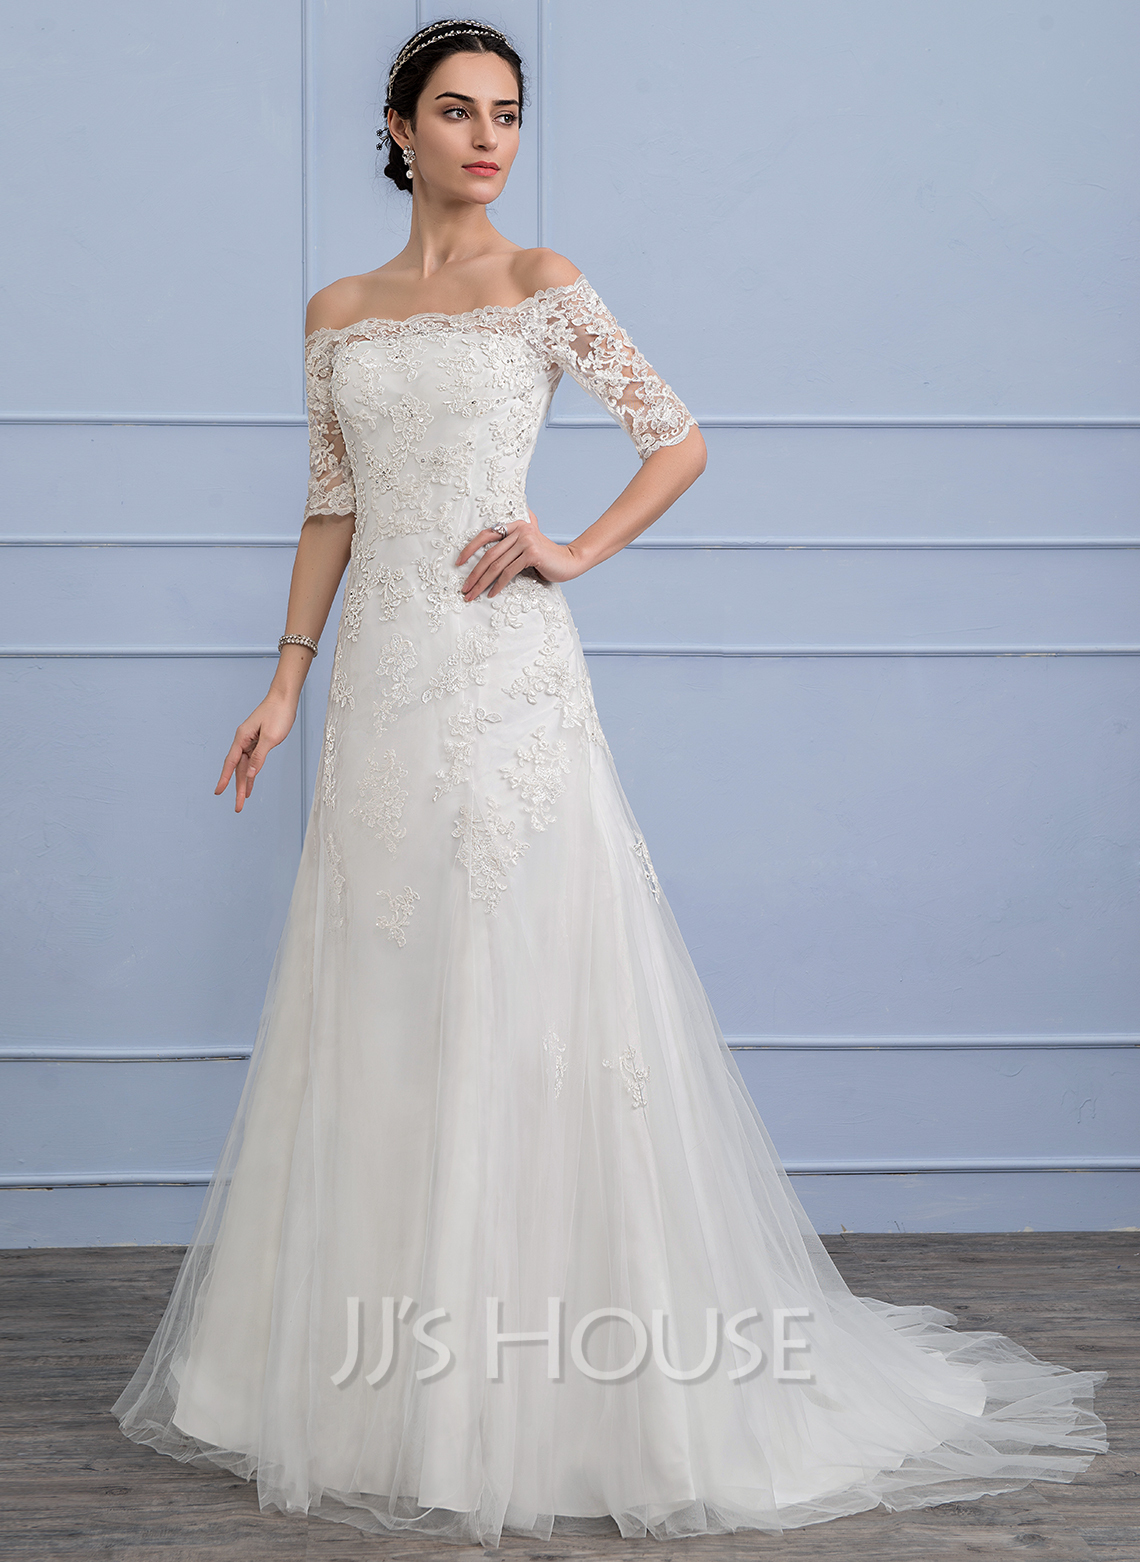 A Line Princess Off The Shoulder Court Train Tulle Lace Wedding Dress With Beading Sequins g jjshouse wedding dress Home Wedding Dresses Loading zoom